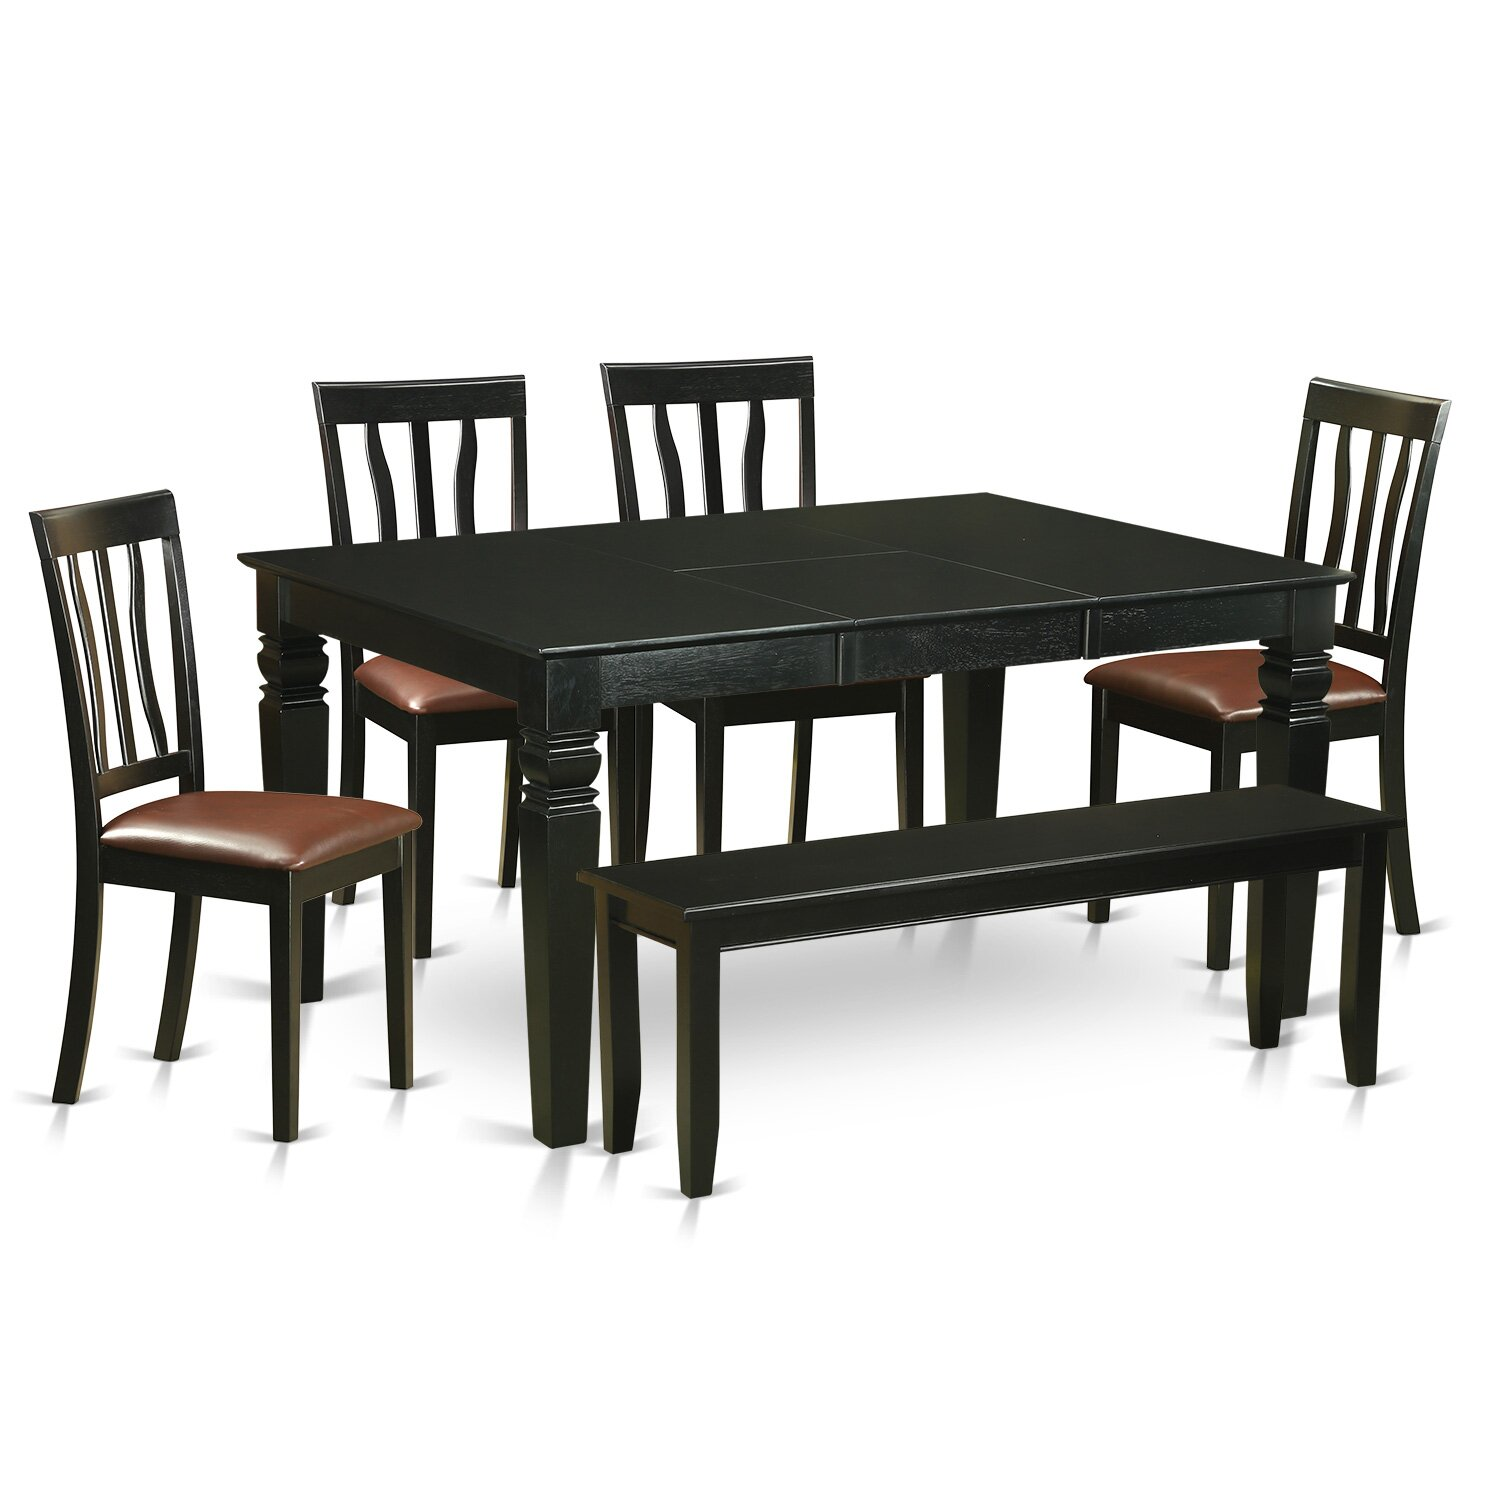 Wooden importers weston 6 piece dining set wayfair for Kitchen and dining room chairs